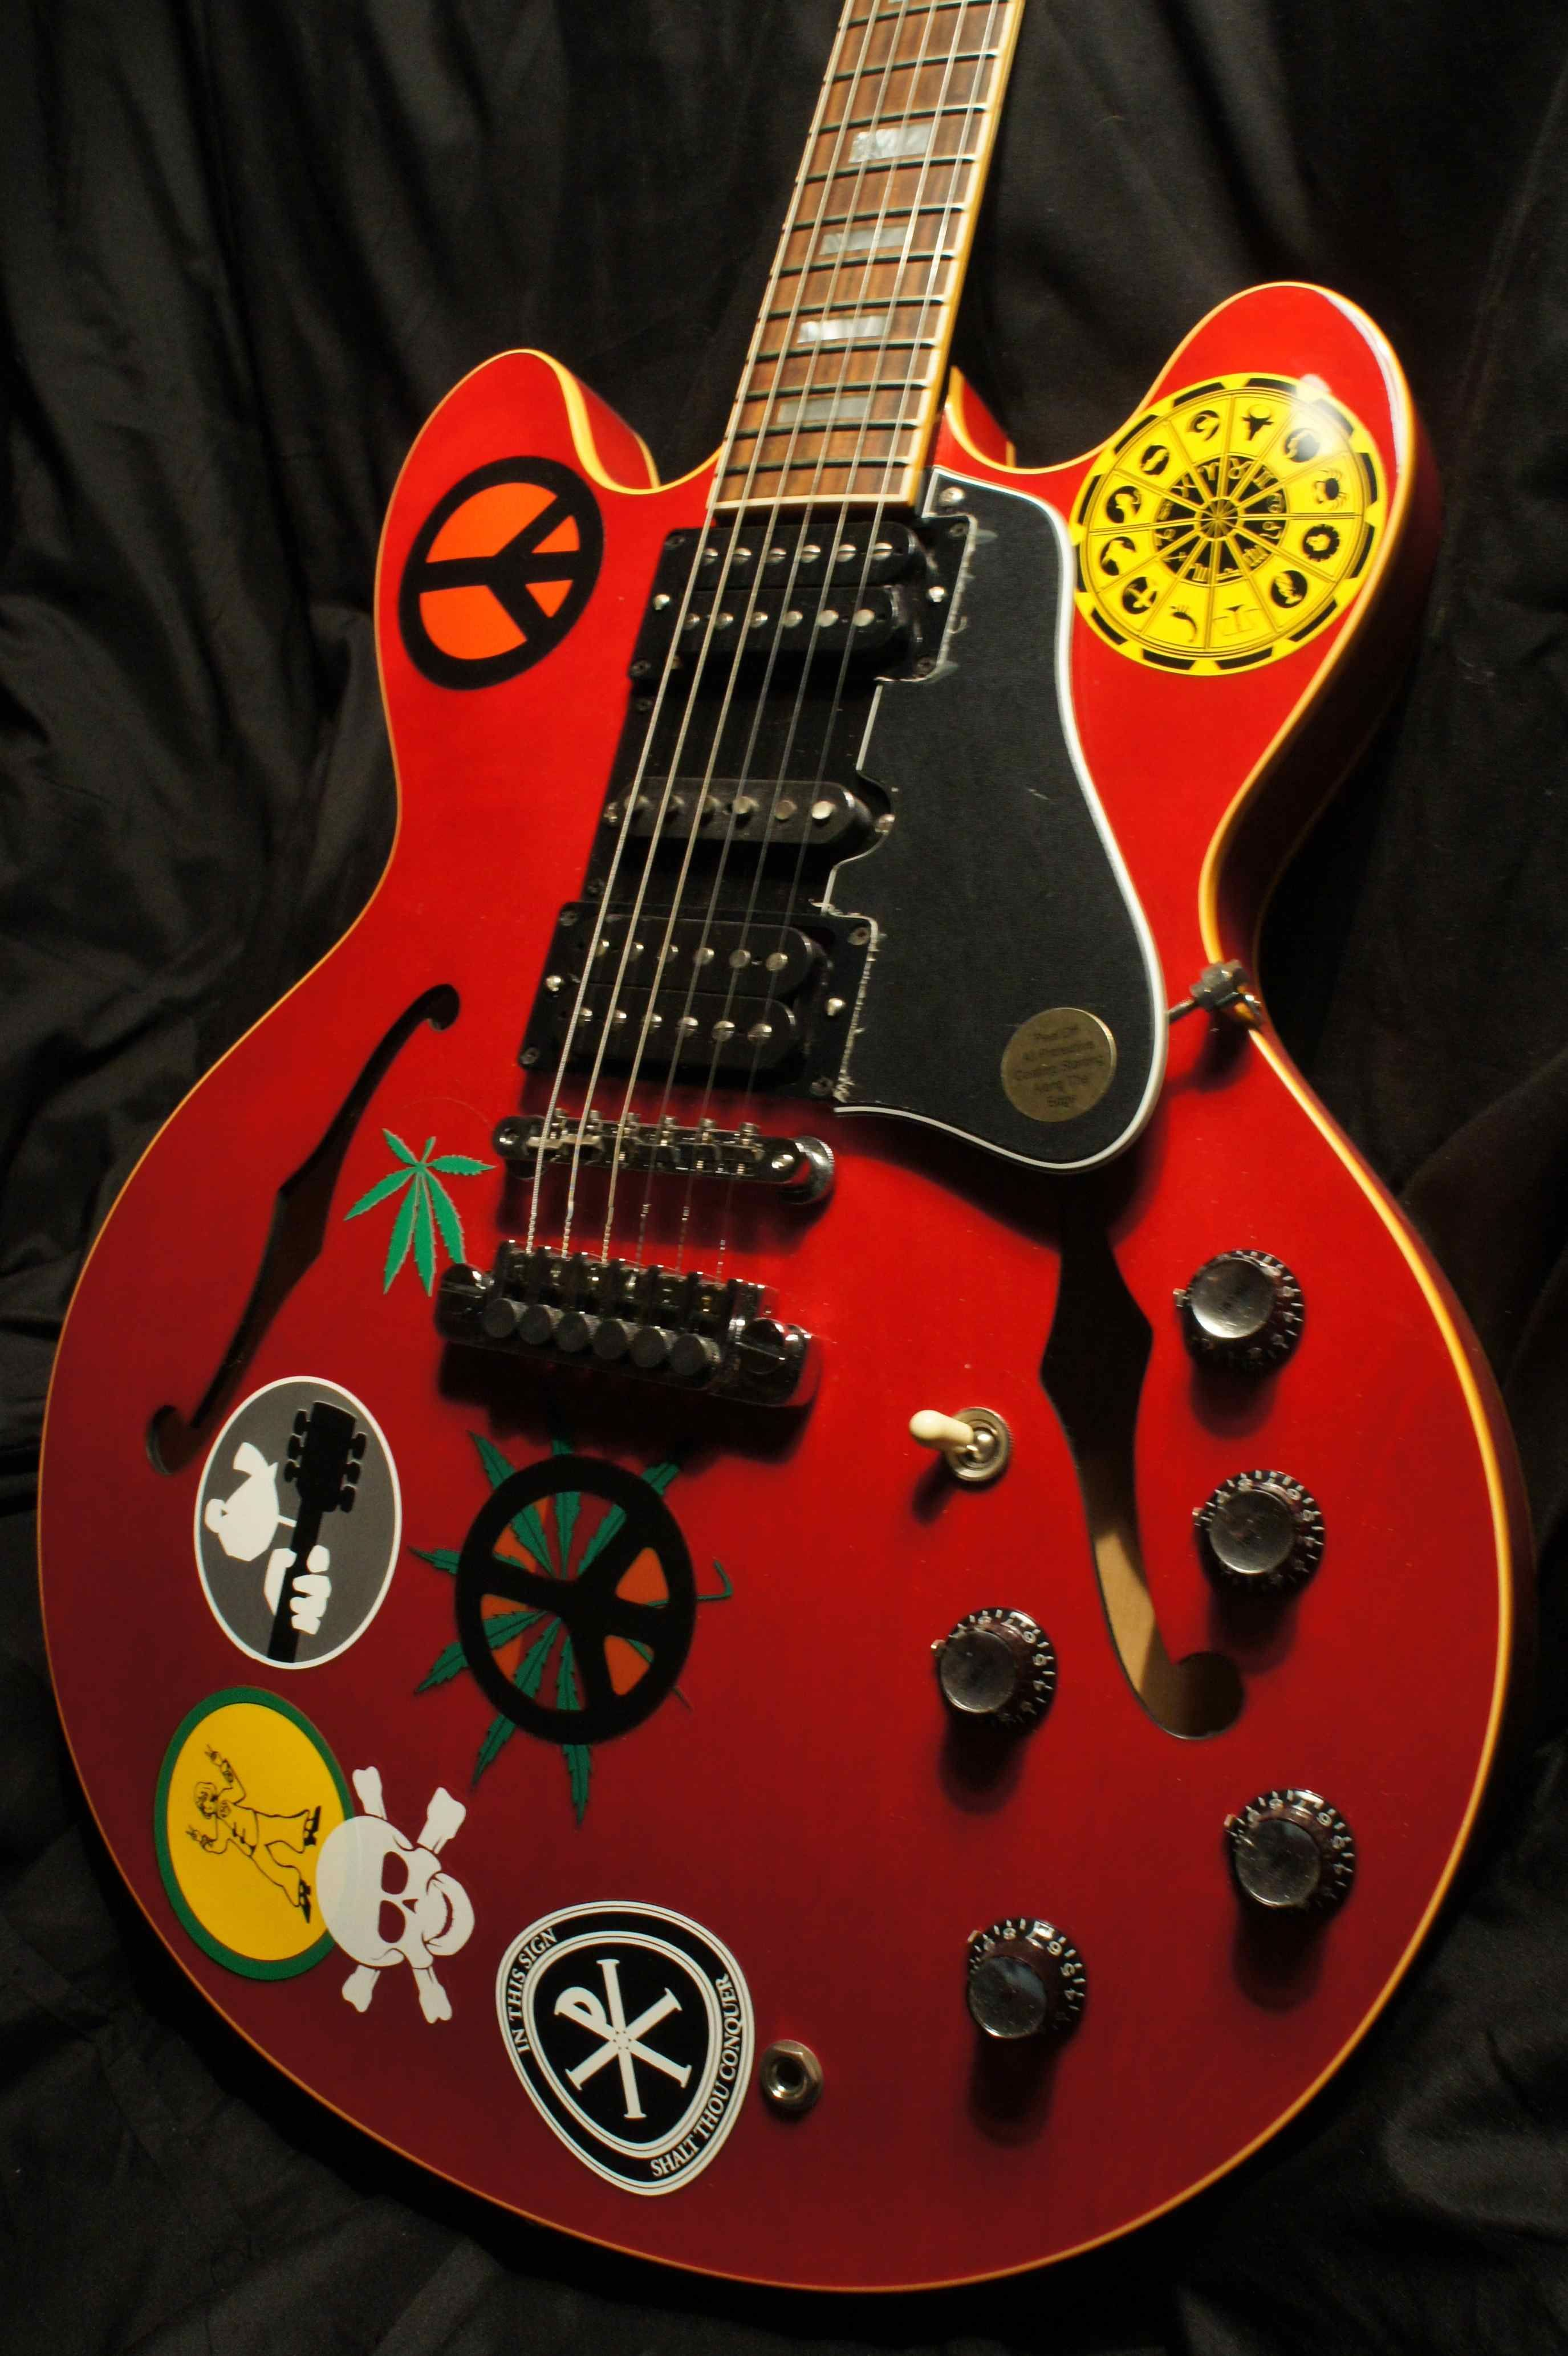 """Gibson Alvin Lee """"Big Red"""" ES 335. A replica of the famous """"Big Red"""" ES 335, full of stickers, played by Alvin Lee of Ten Years After (as seen in Woodstock!). Alvin liked the sound of Strats but was not confortable with the dimension of the guitar and volume knobs placement. So he installed on a piece of plastic the bridge pickup of the strat in the mid of the Es335, added a volume pot and connected it to the output (so you can never switch it off, just pull down volume)."""